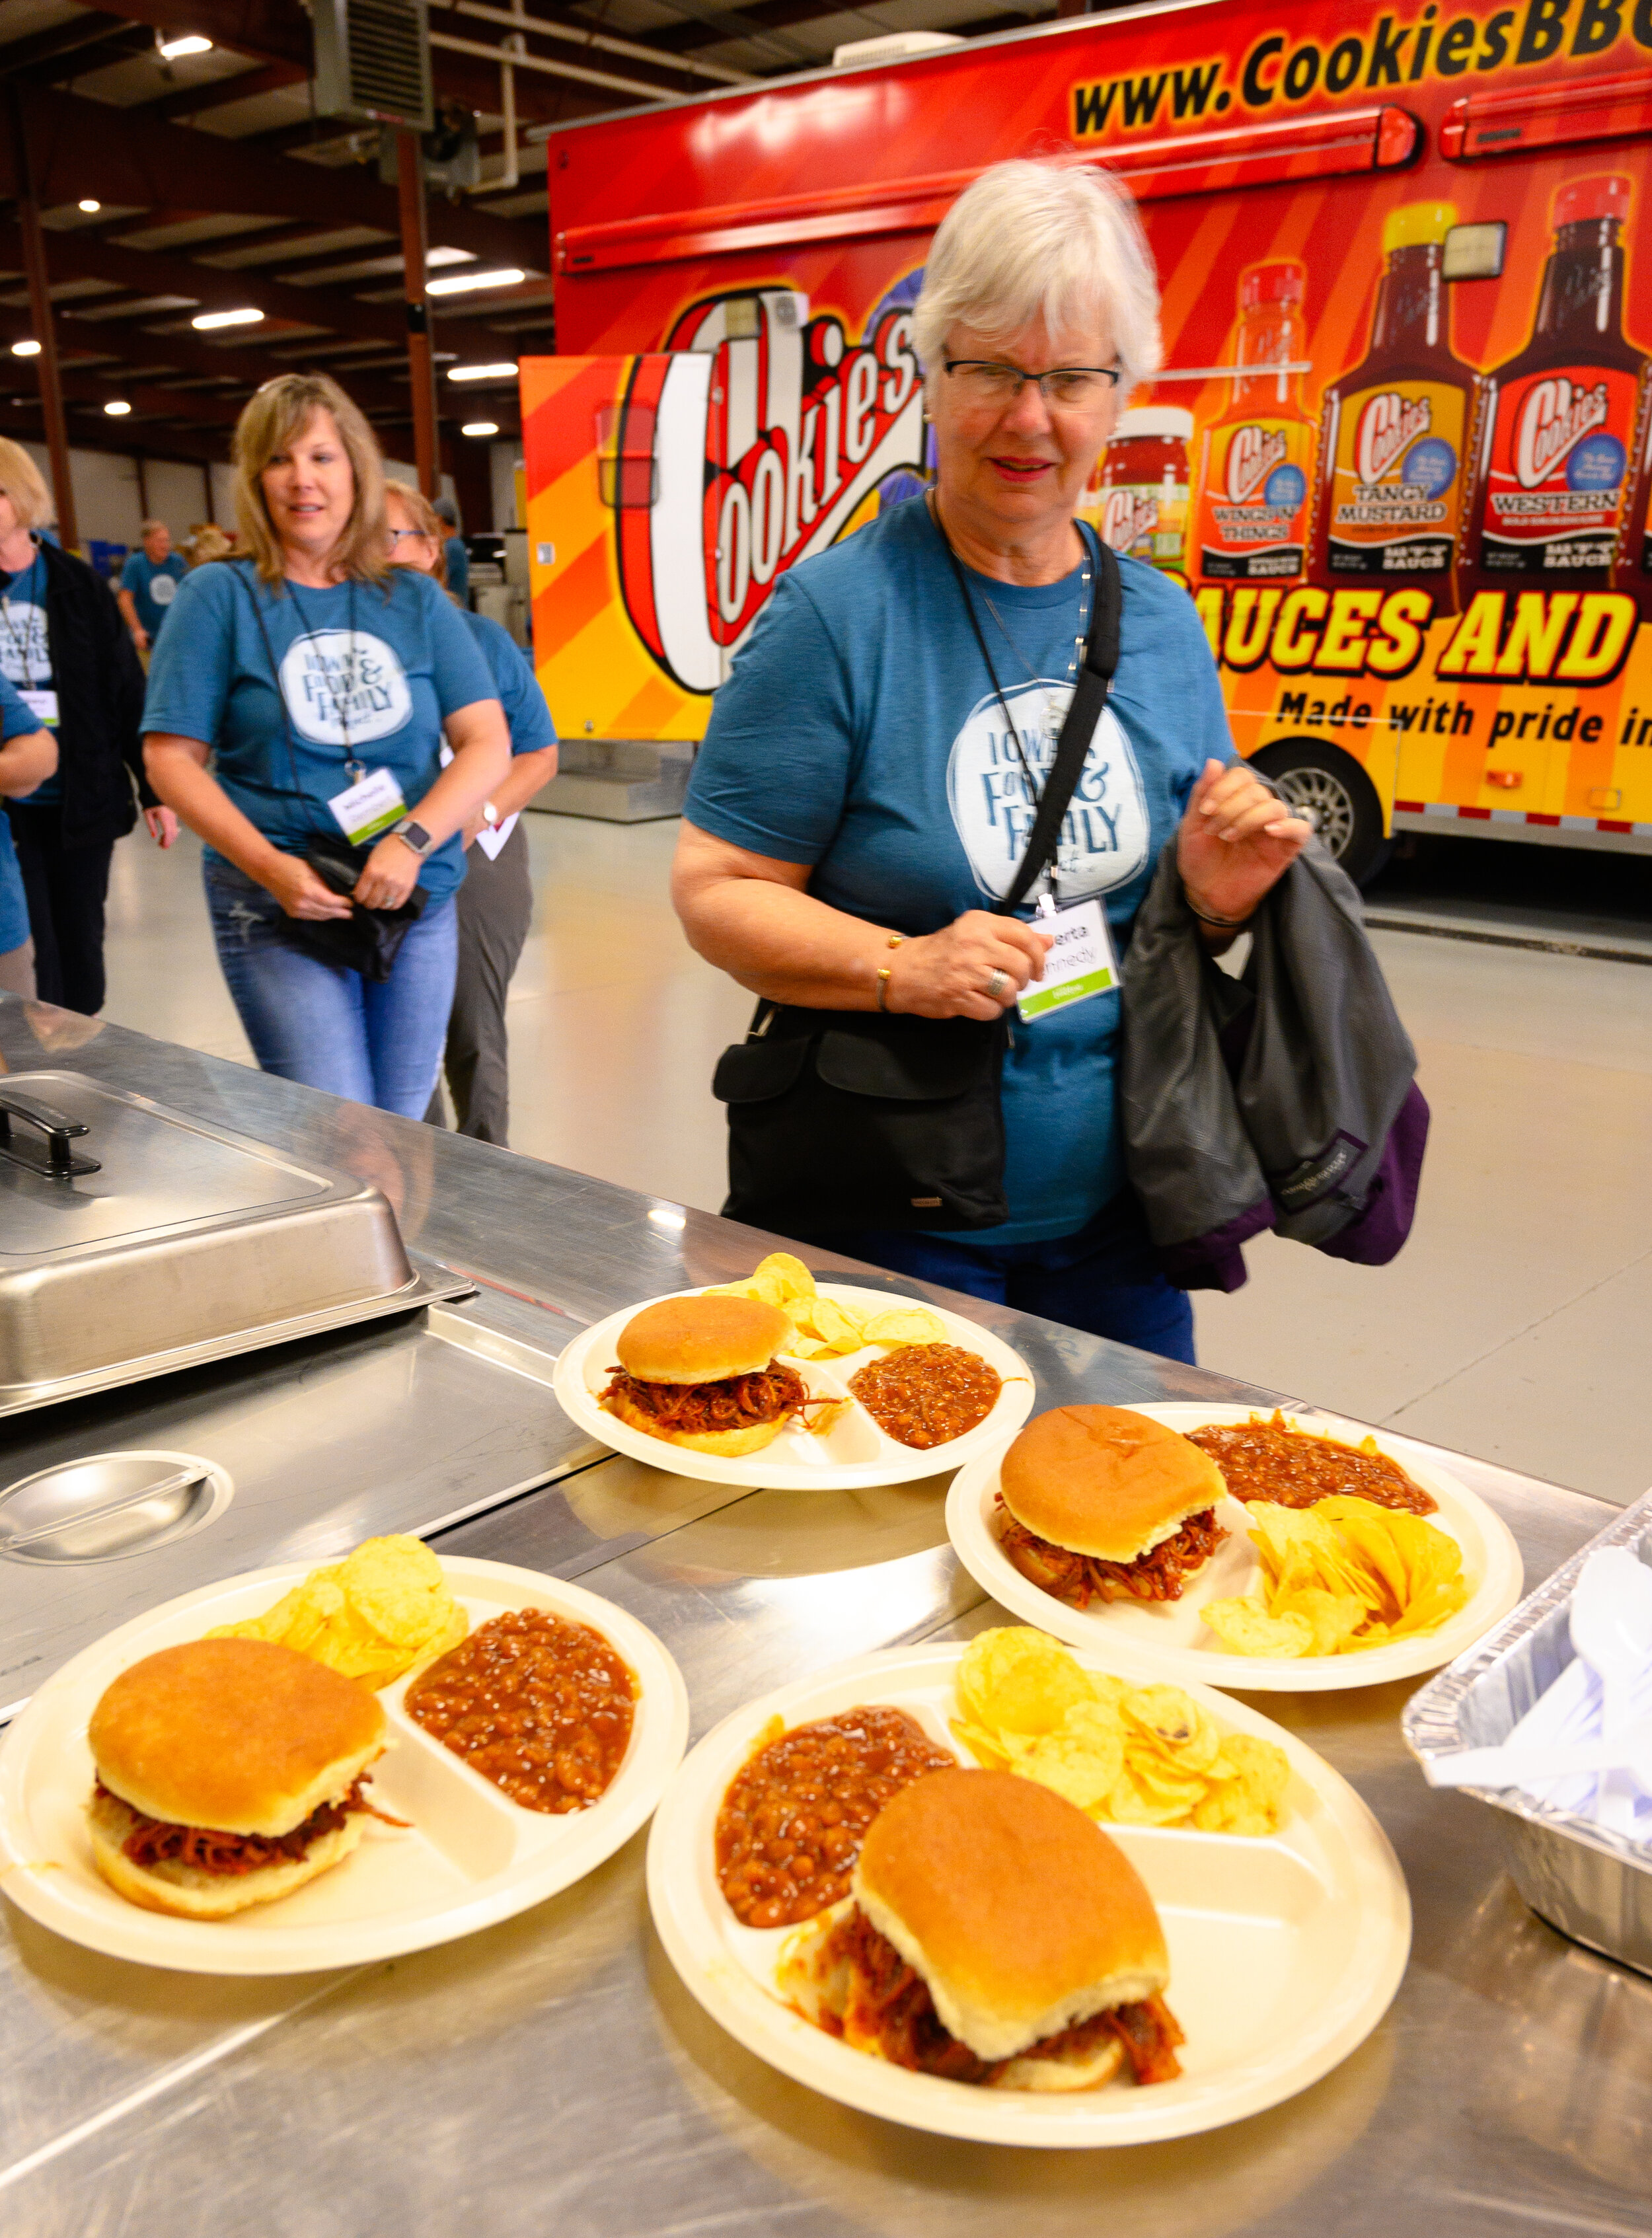 After a tour of Cookies Food Products, guests enjoyed pulled-pork sandwiches and baked beans… with Cookies BBQ sauce, of course! Photo credit: Joseph L. Murphy/Iowa Soybean Association